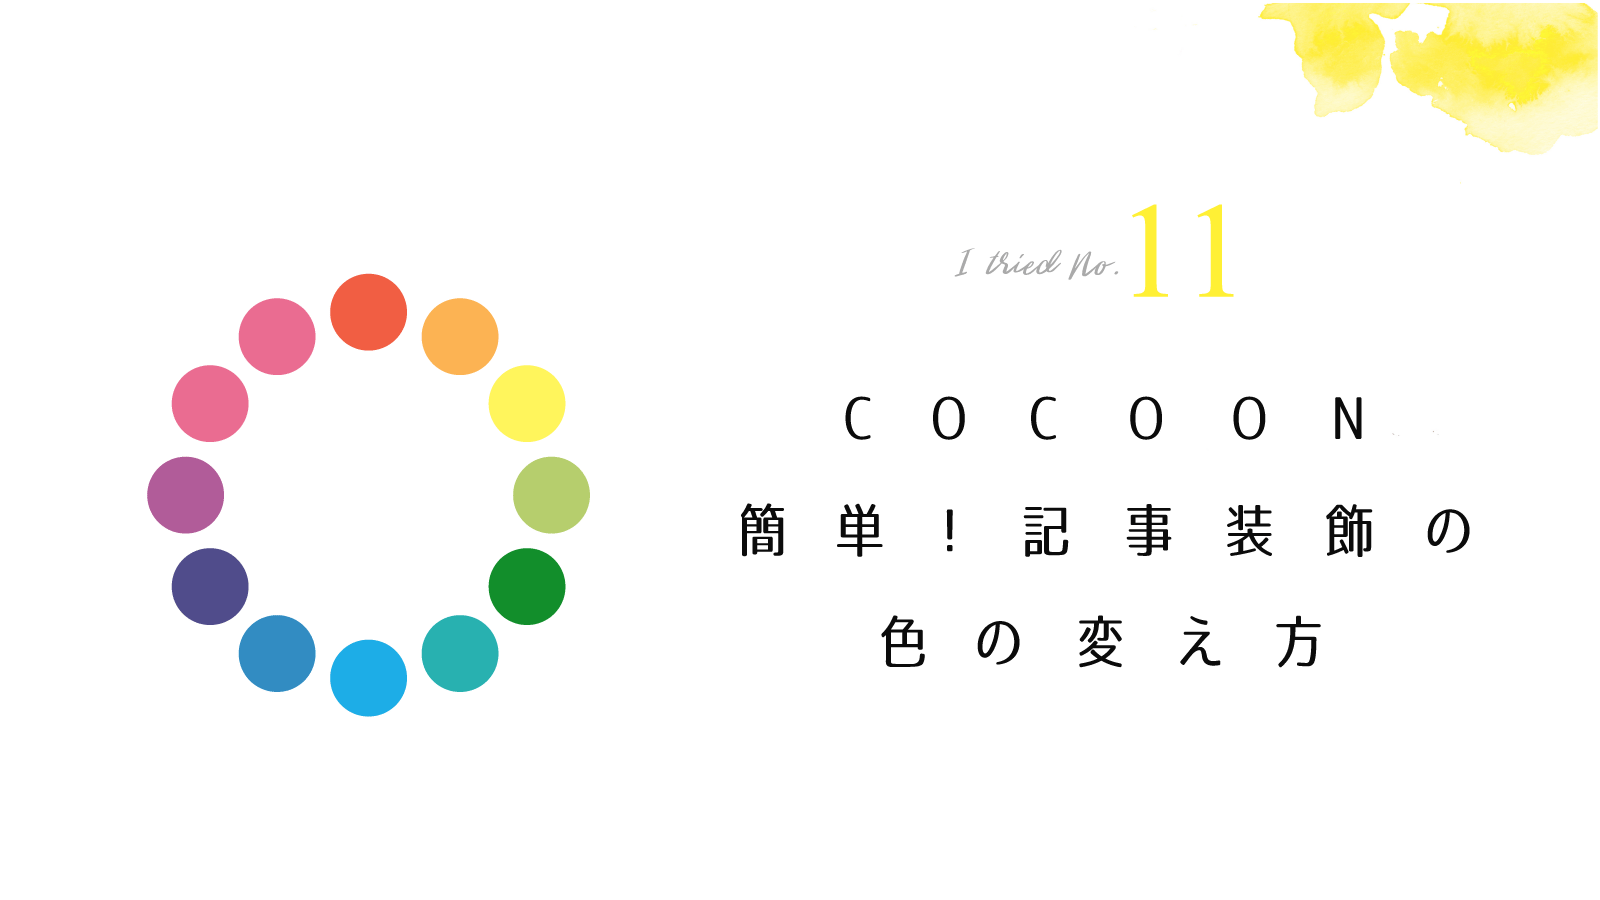 Cocoon カスタマイズ 装飾